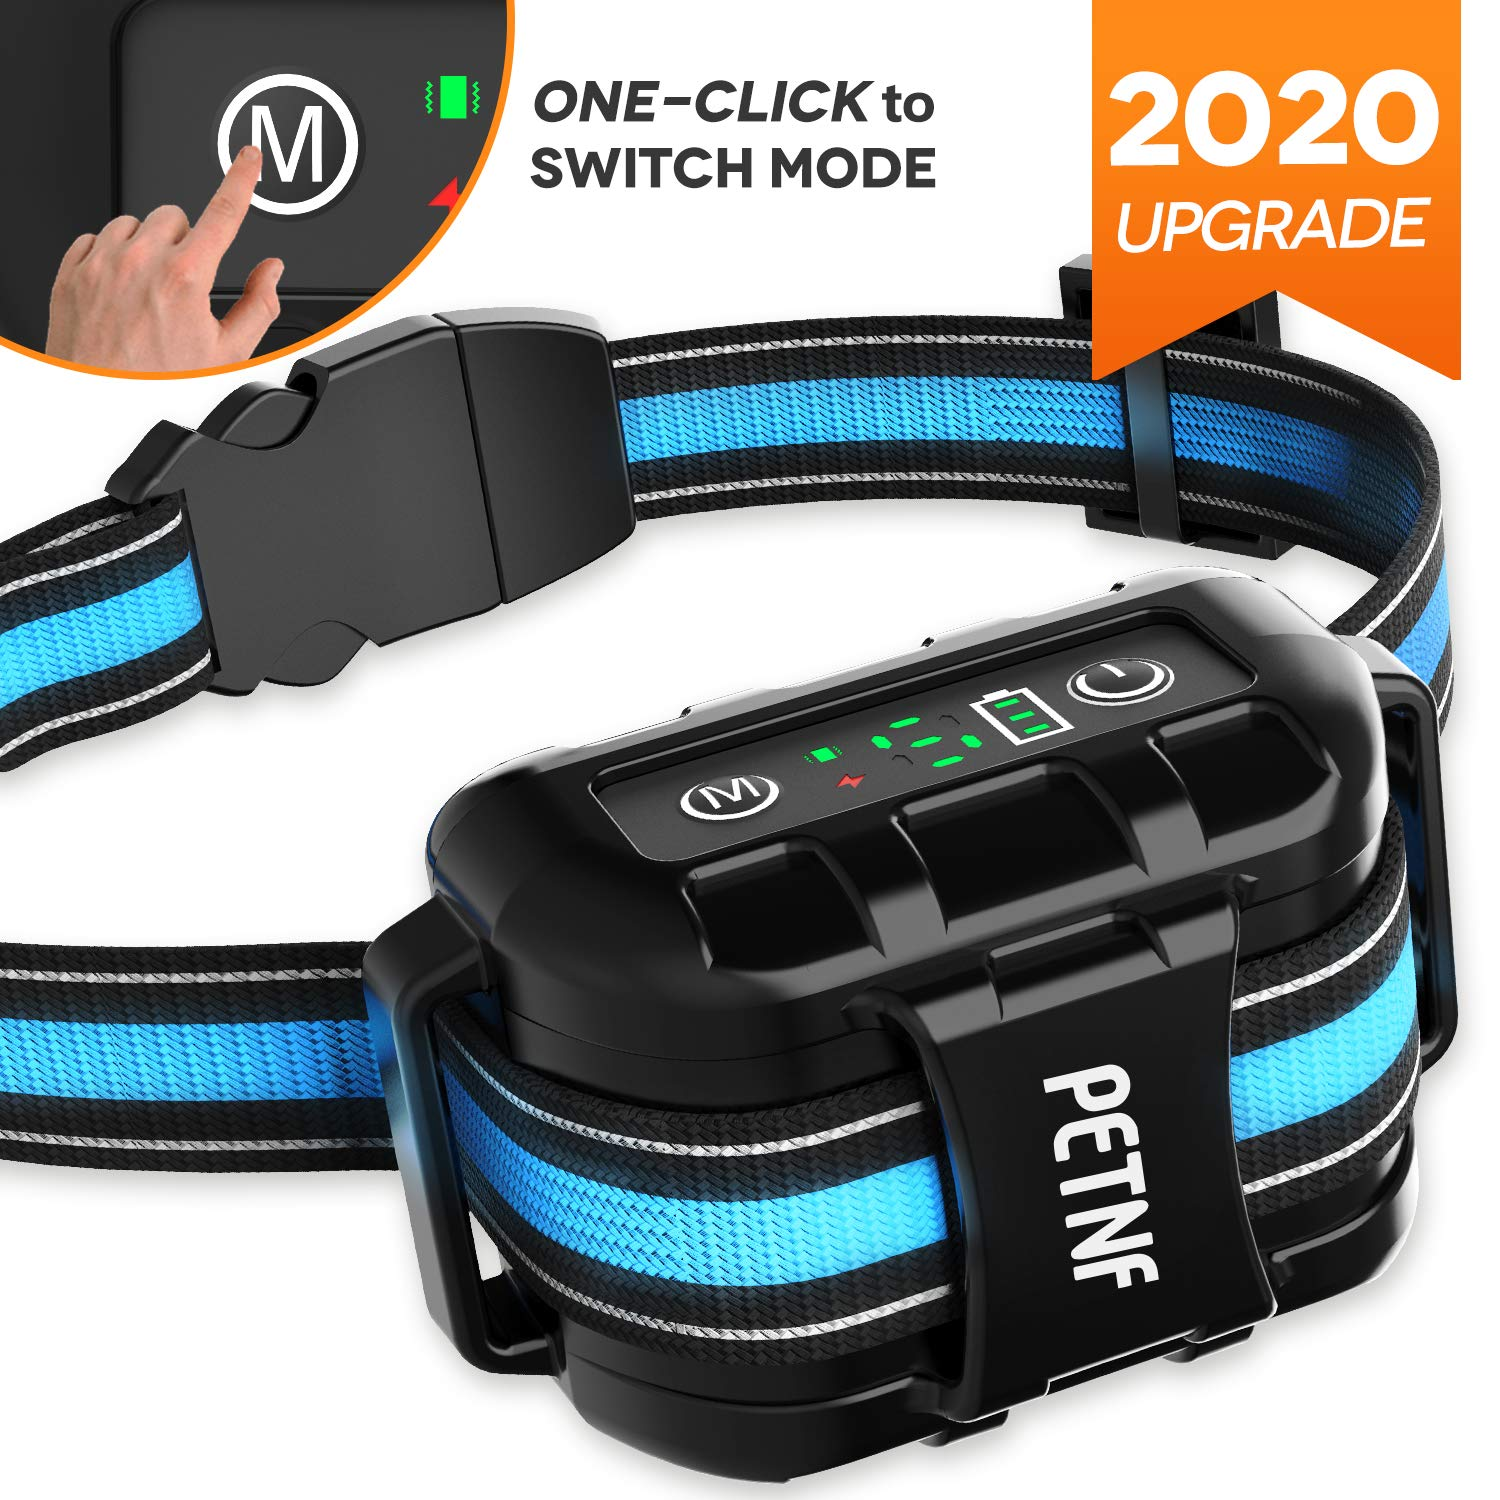 2020 New Upgrade Bark Collar for Large Medium Small Dog,Dog Bark Collar IP67 Waterproof Shock Collar,Rechargeable Anti Barking Collar for Dogs,Stop Barking Control Device,Humane Safe Electric Collar